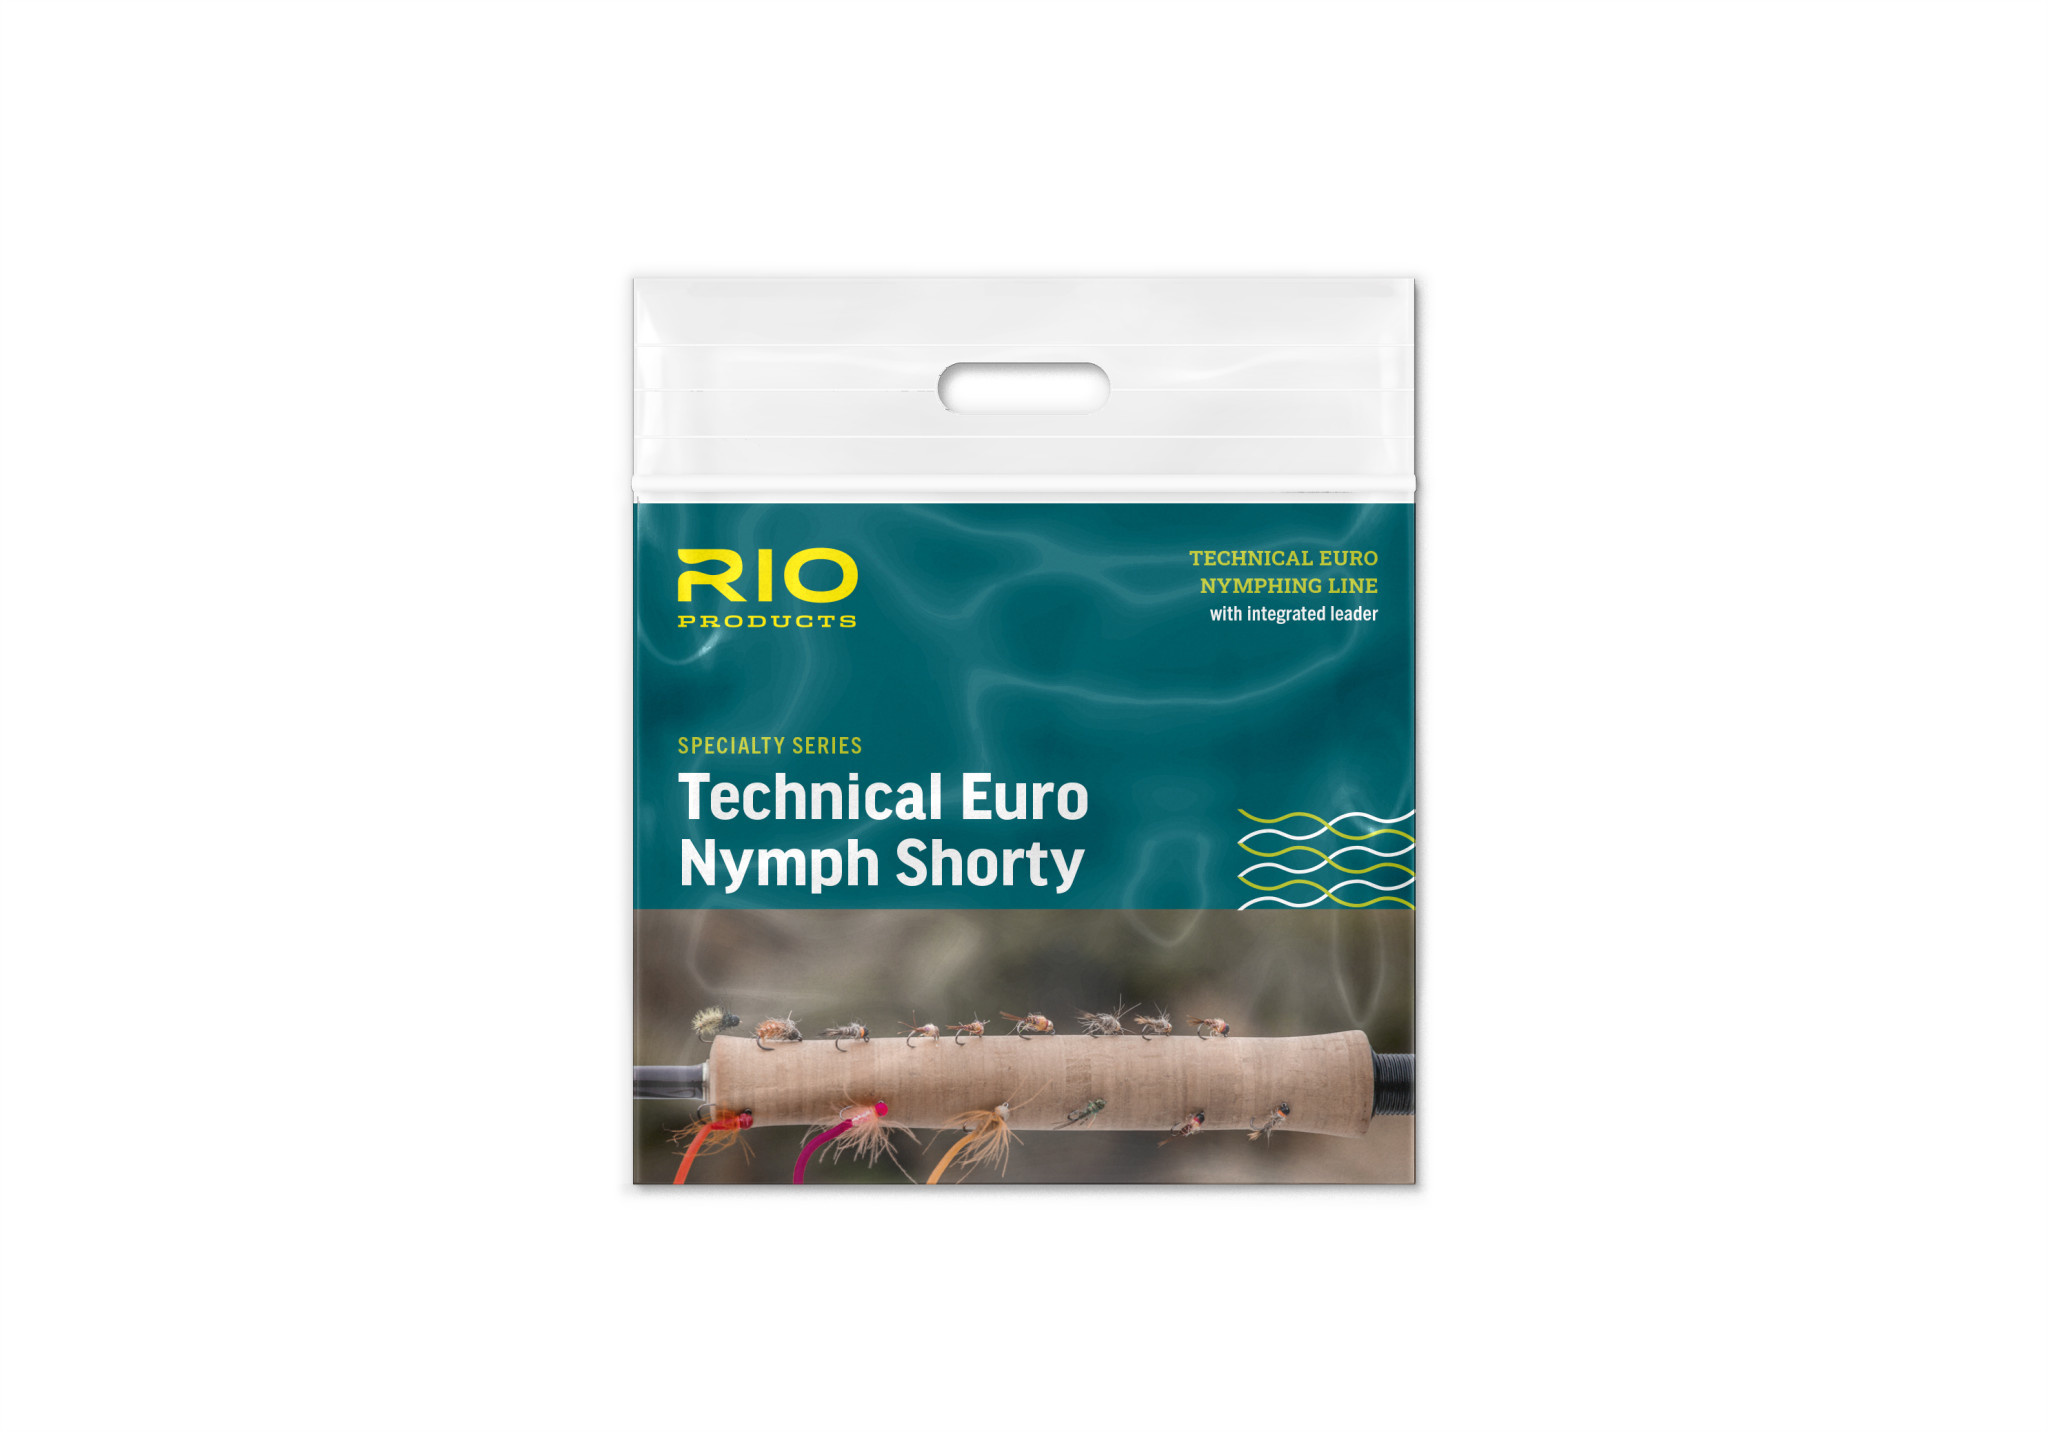 TECHNICAL EURO NYMPH SHORTY